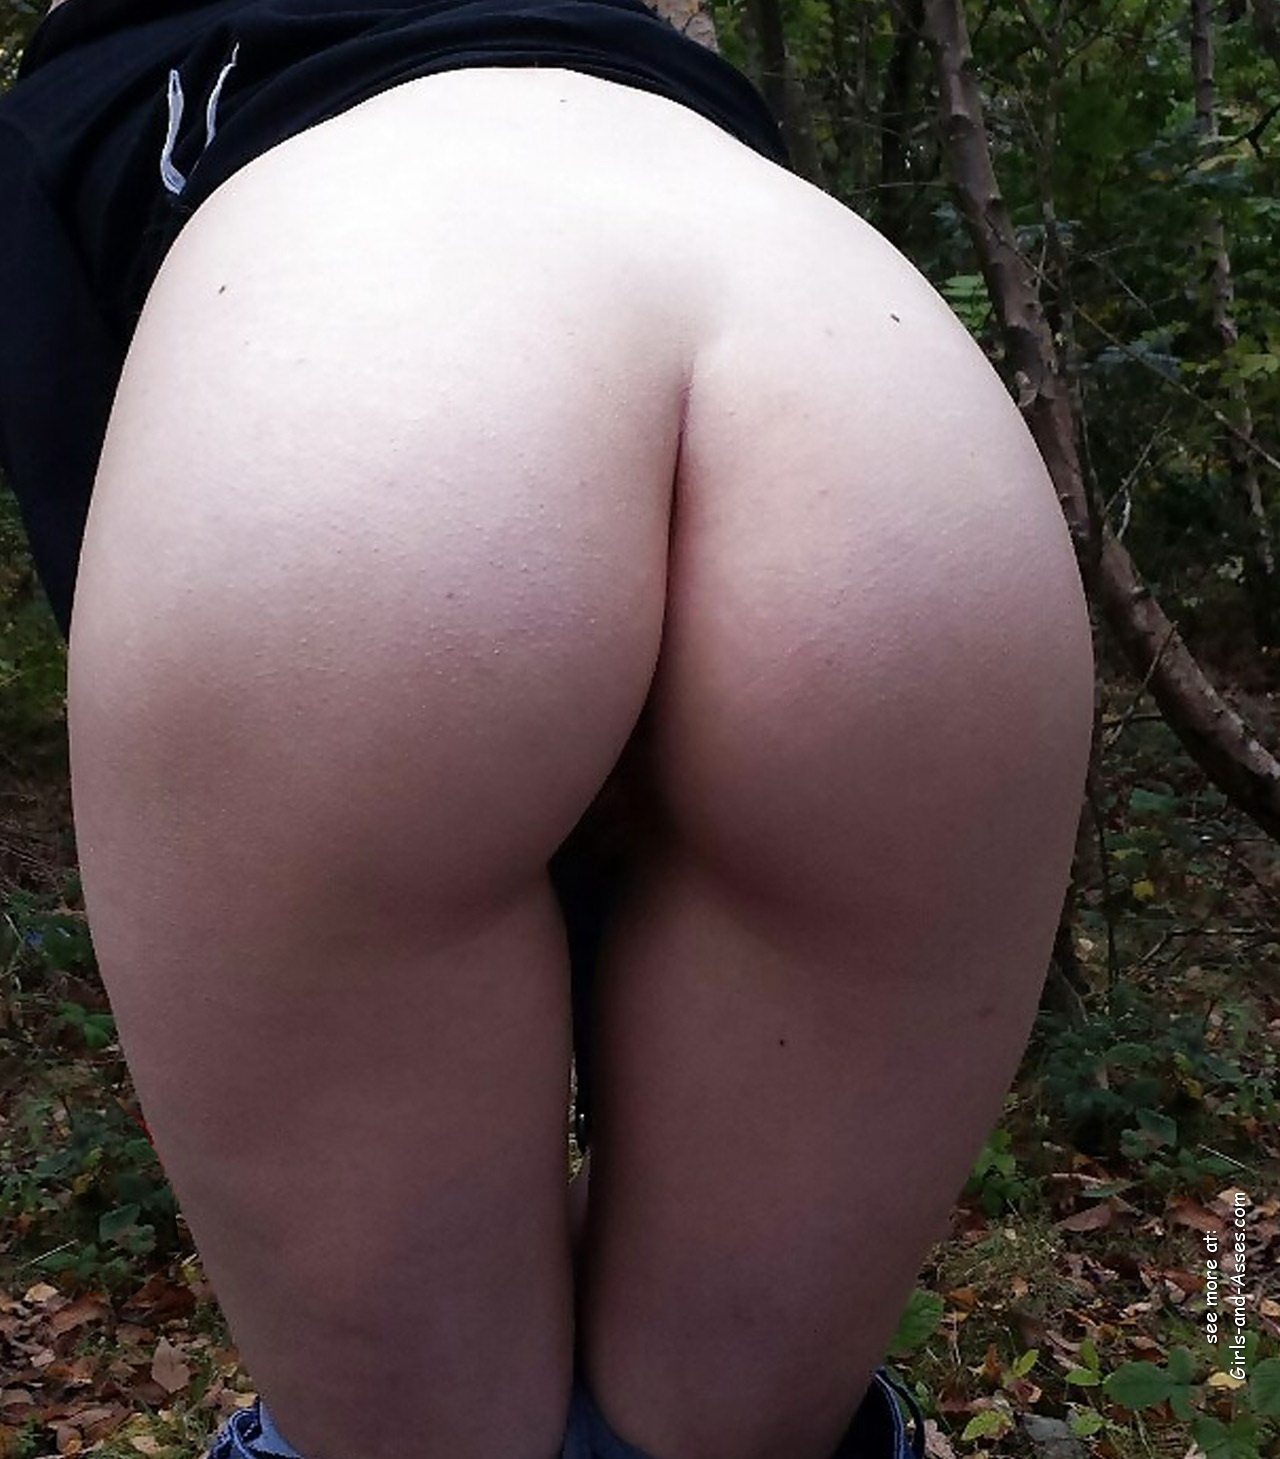 booty in the wild face down ass up picture 02357